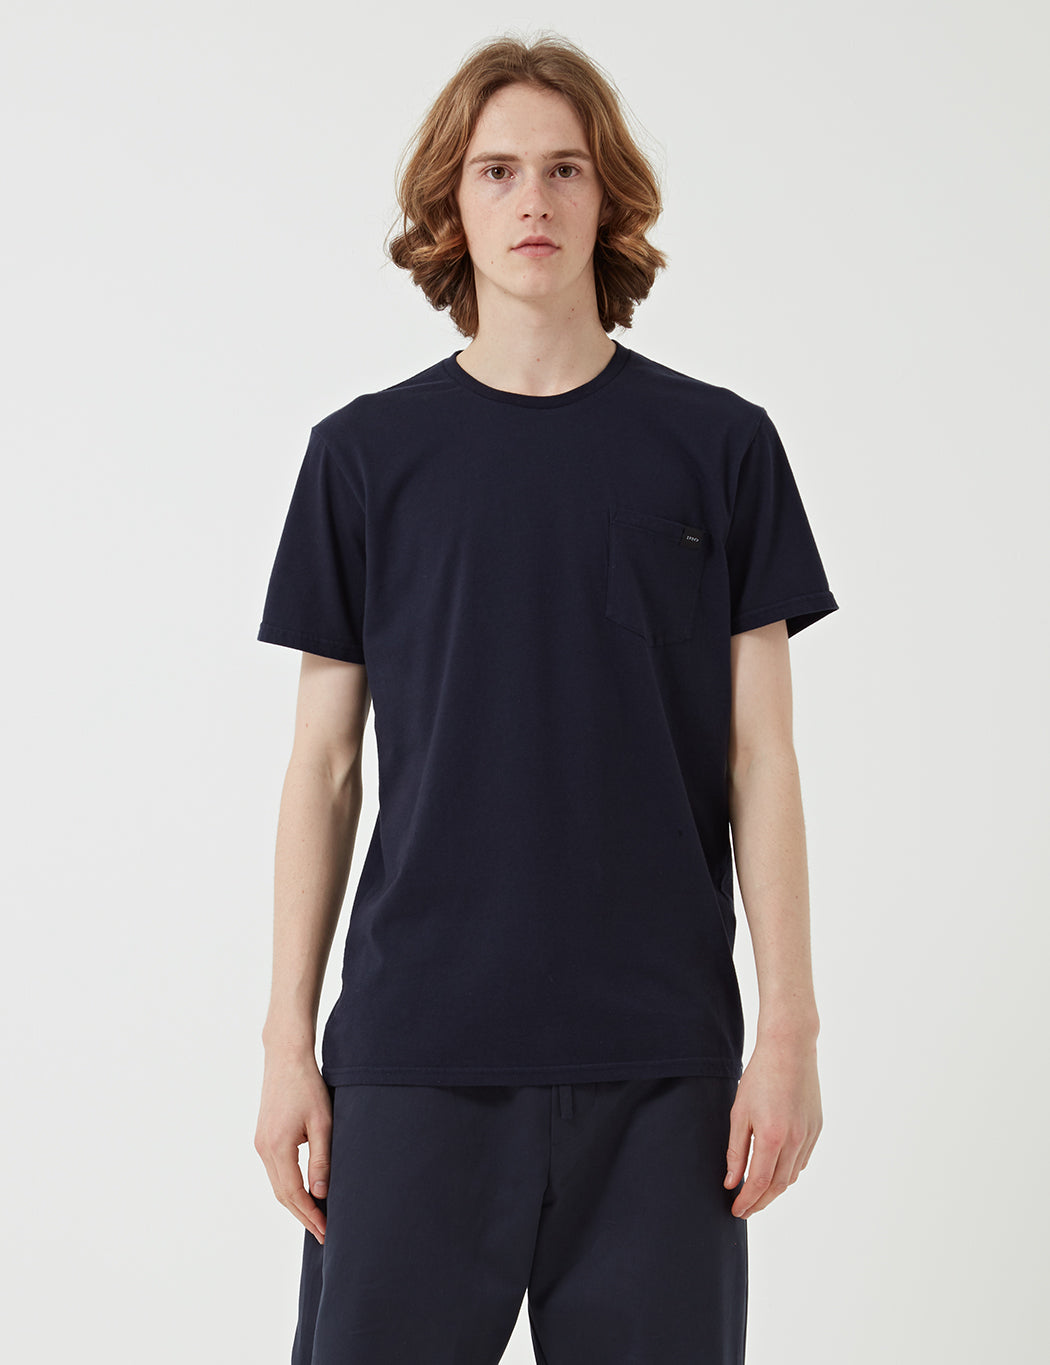 Edwin Pocket Jersey T-Shirt - Navy Blue